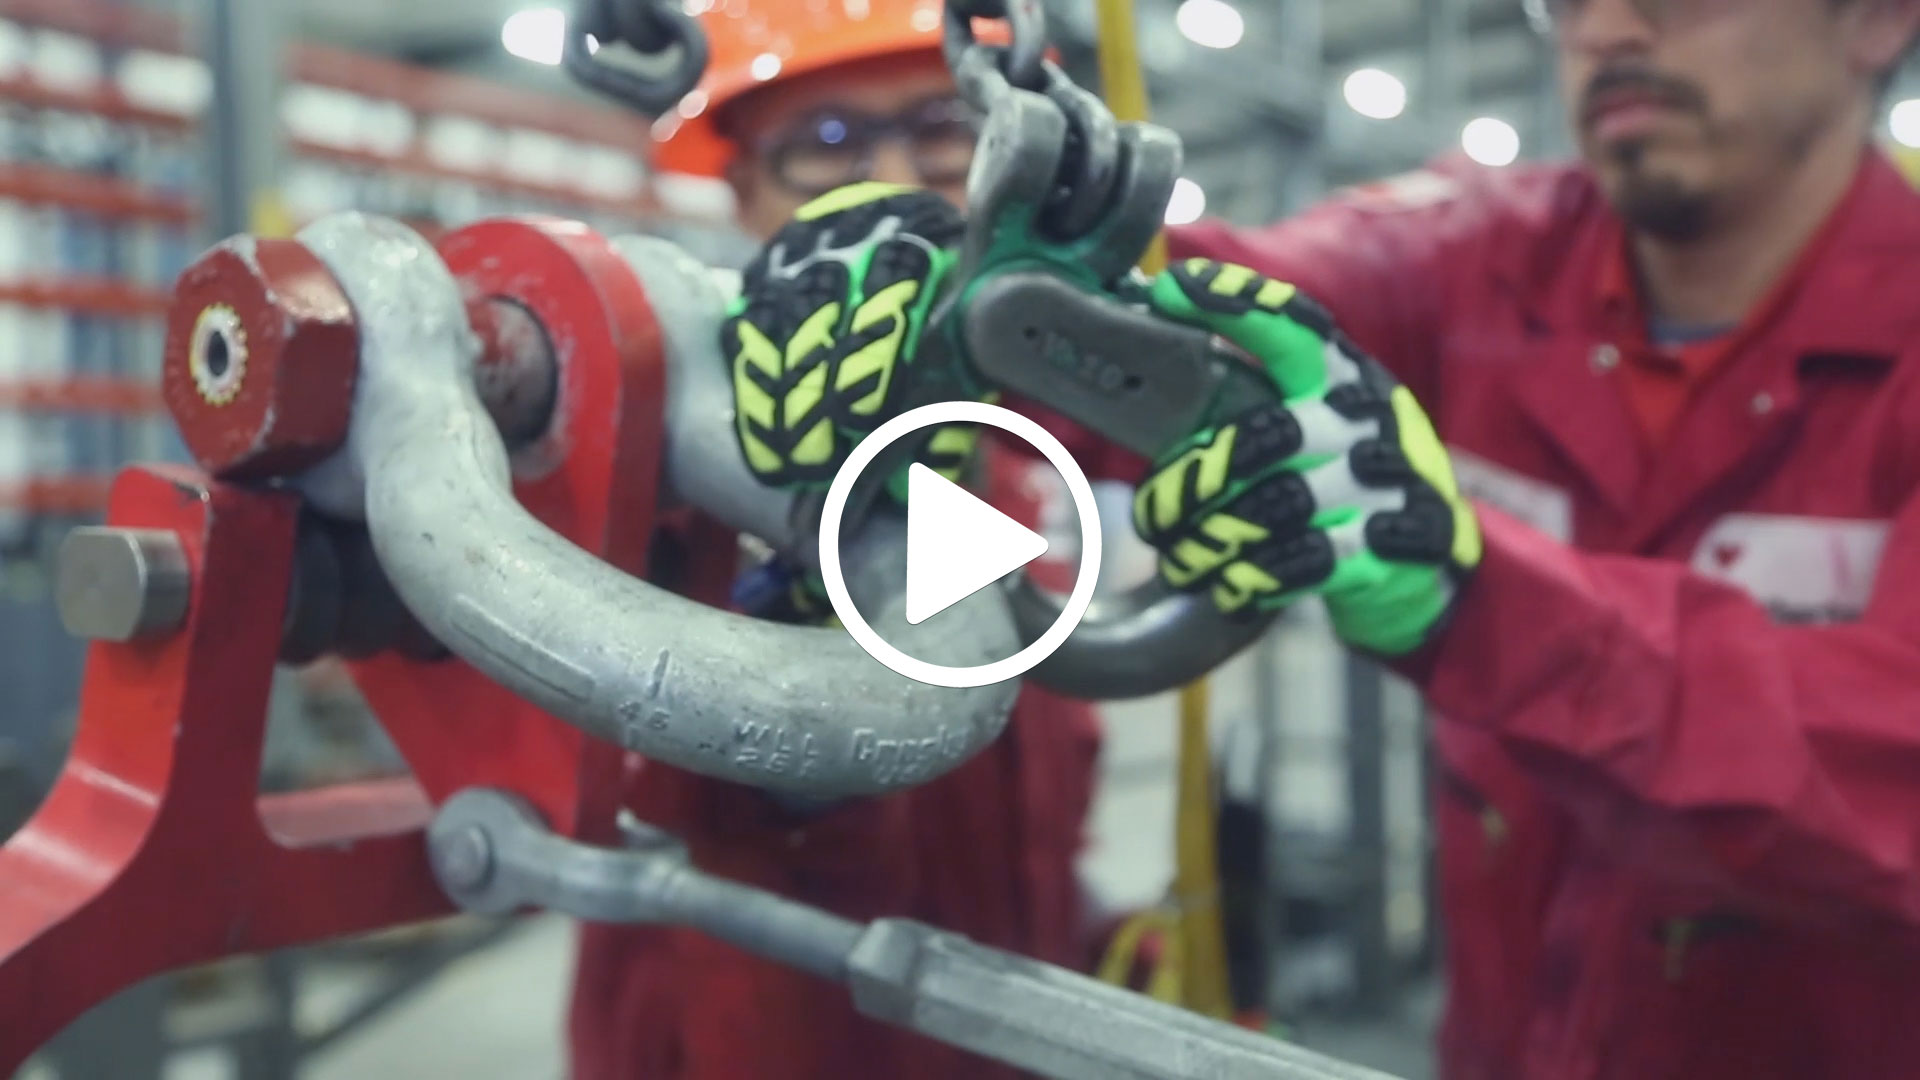 Watch our careers video for available job opening Field Service Technician - Pumping Units in Bakersfield, CA